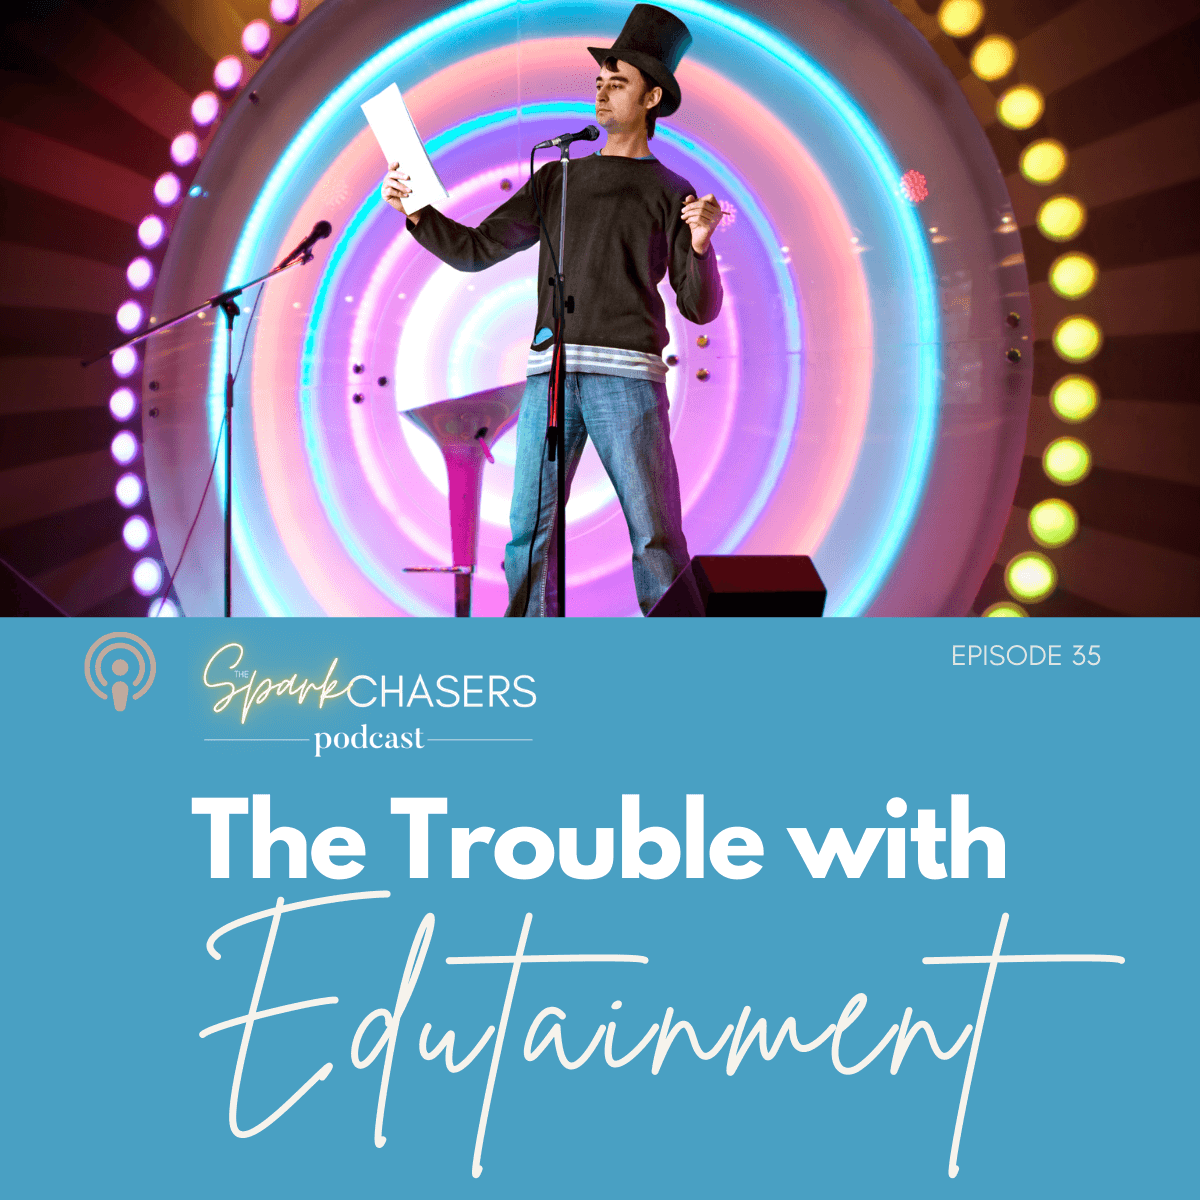 the trouble with edutainment